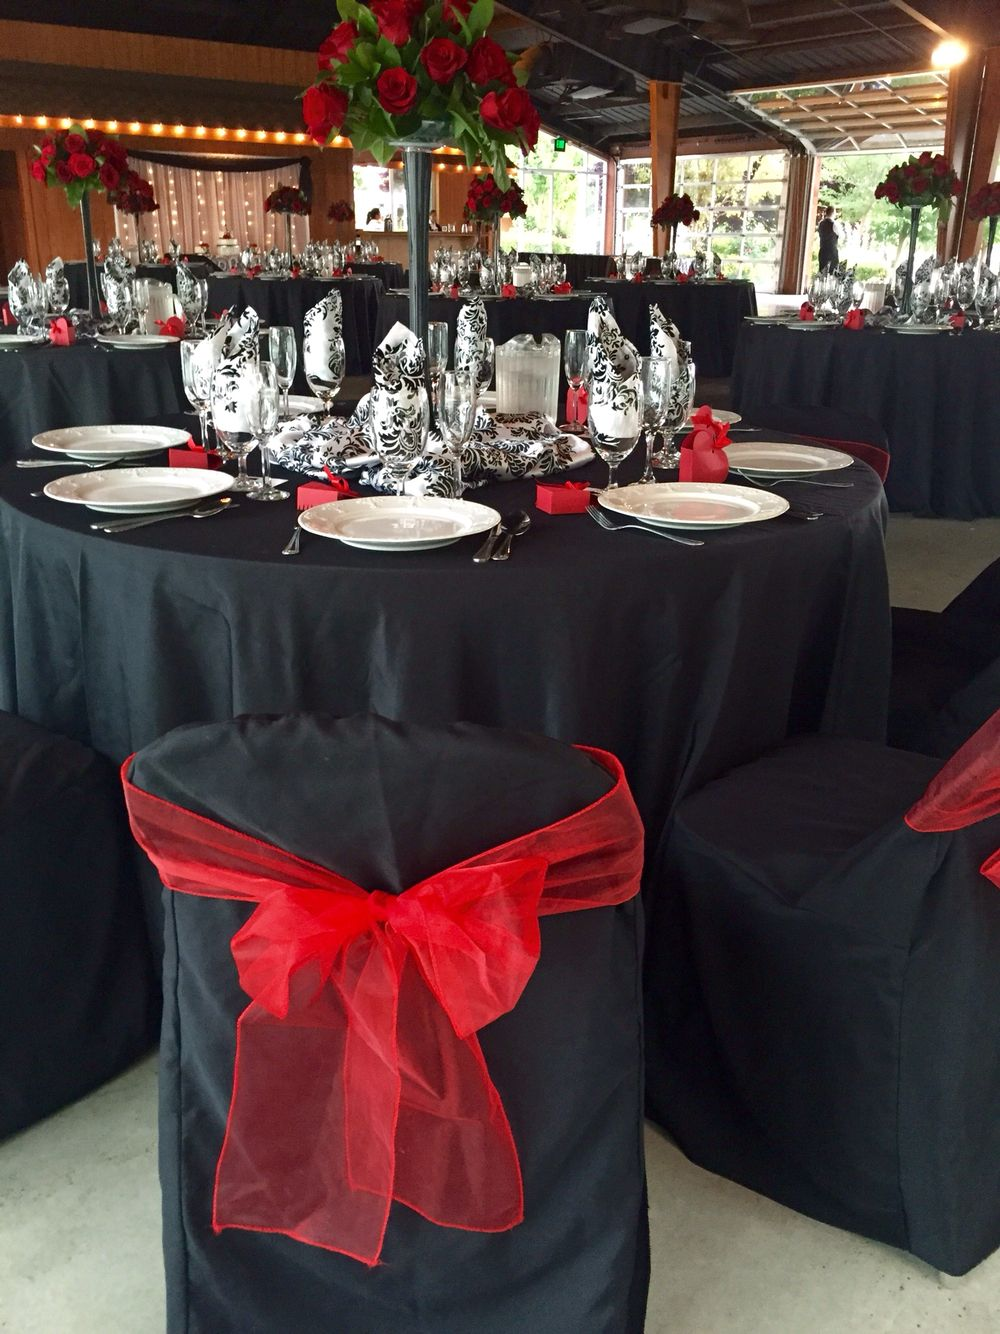 Black Table Cloth, Damask Satin Overlay Bunched In Middle Of Table, Red  Chair Bow